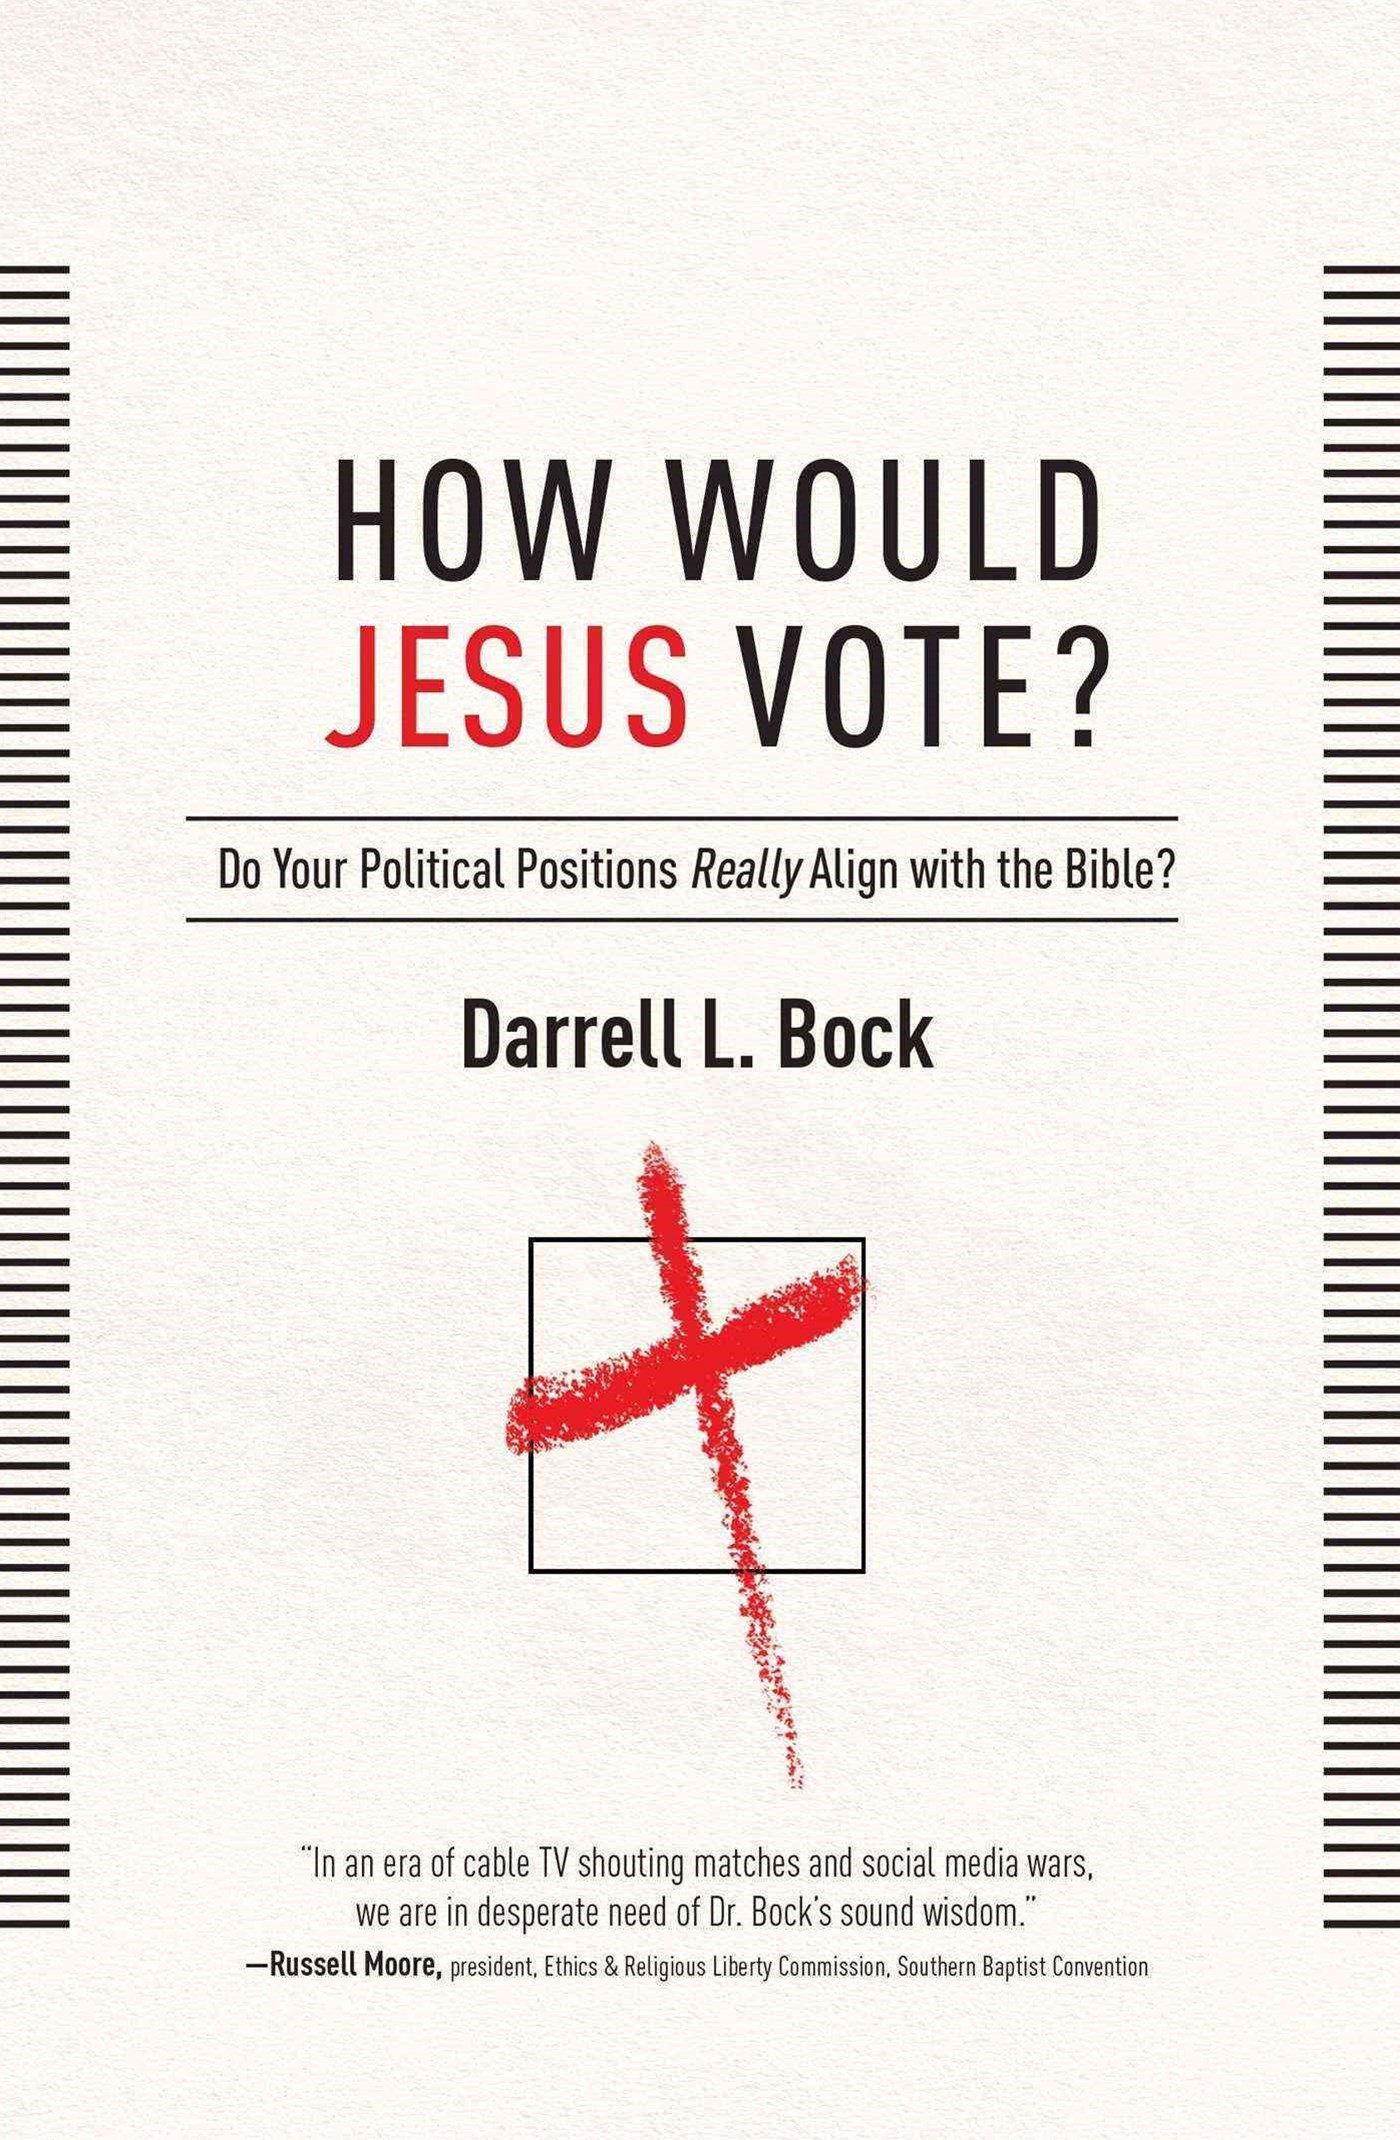 How Would Jesus Vote? - Do Your Political Views Really Align with the Bible?